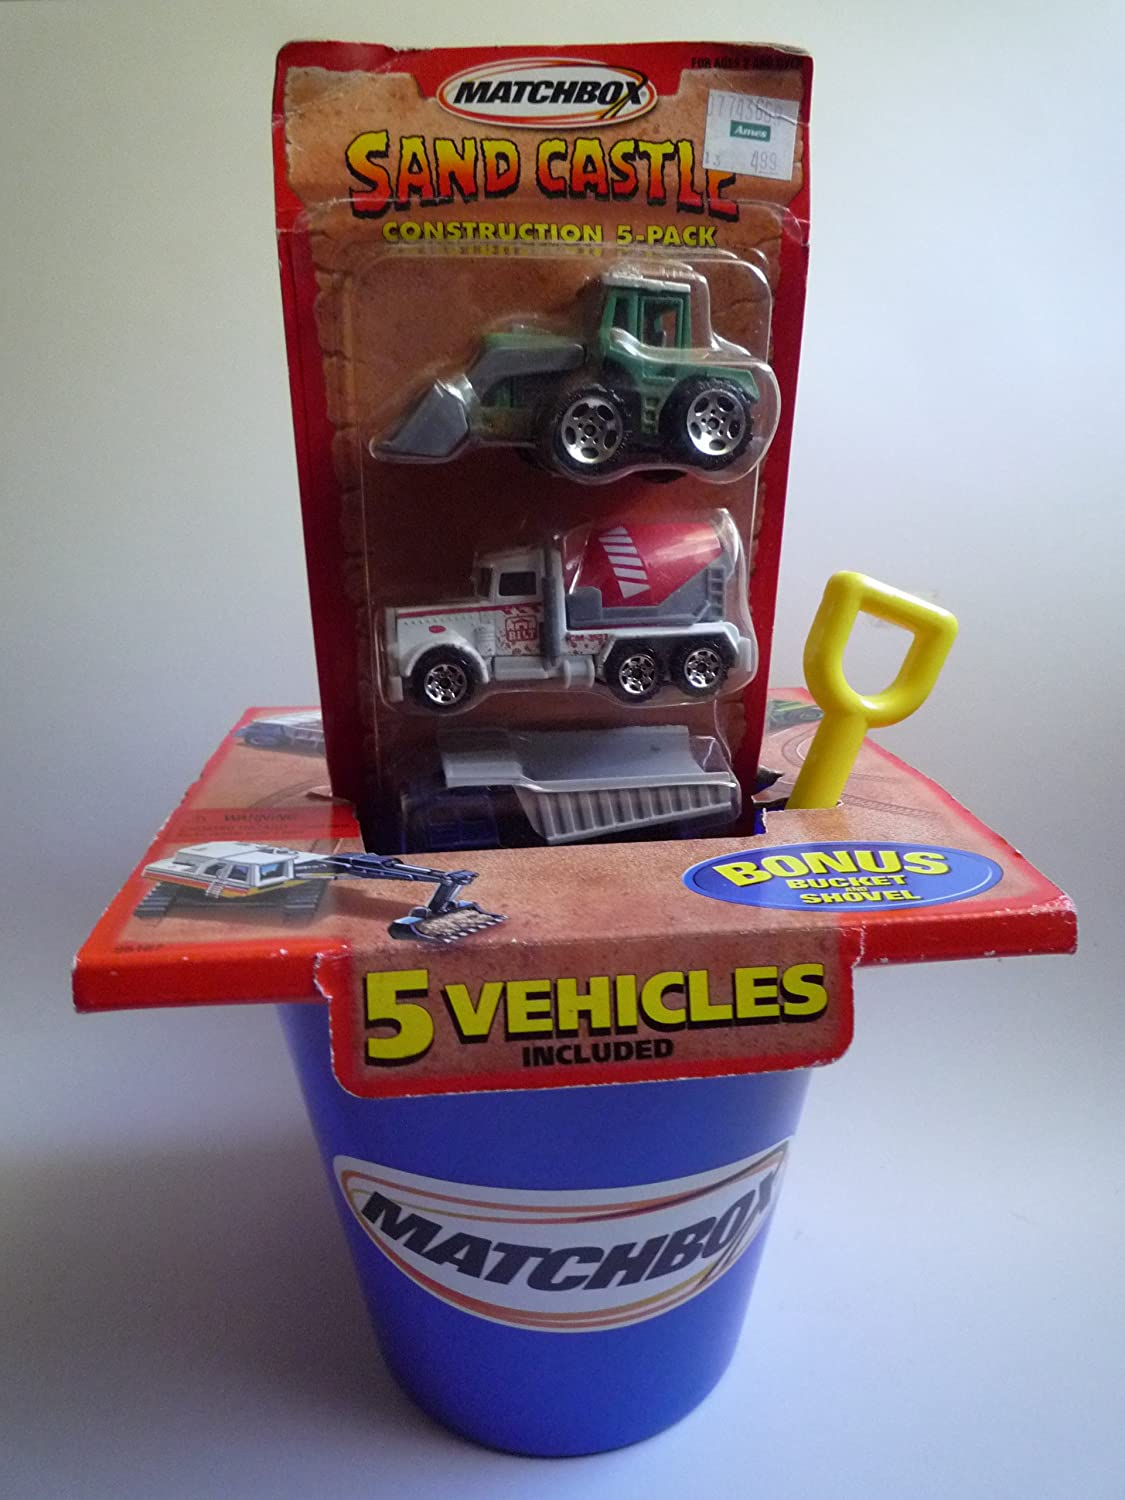 2000 Matchbox Sand Castle Construction 5 Pack Tractor Shovel / Cement Mixer / Earth Mover / Excavator / Ford Dump/Utility Truck